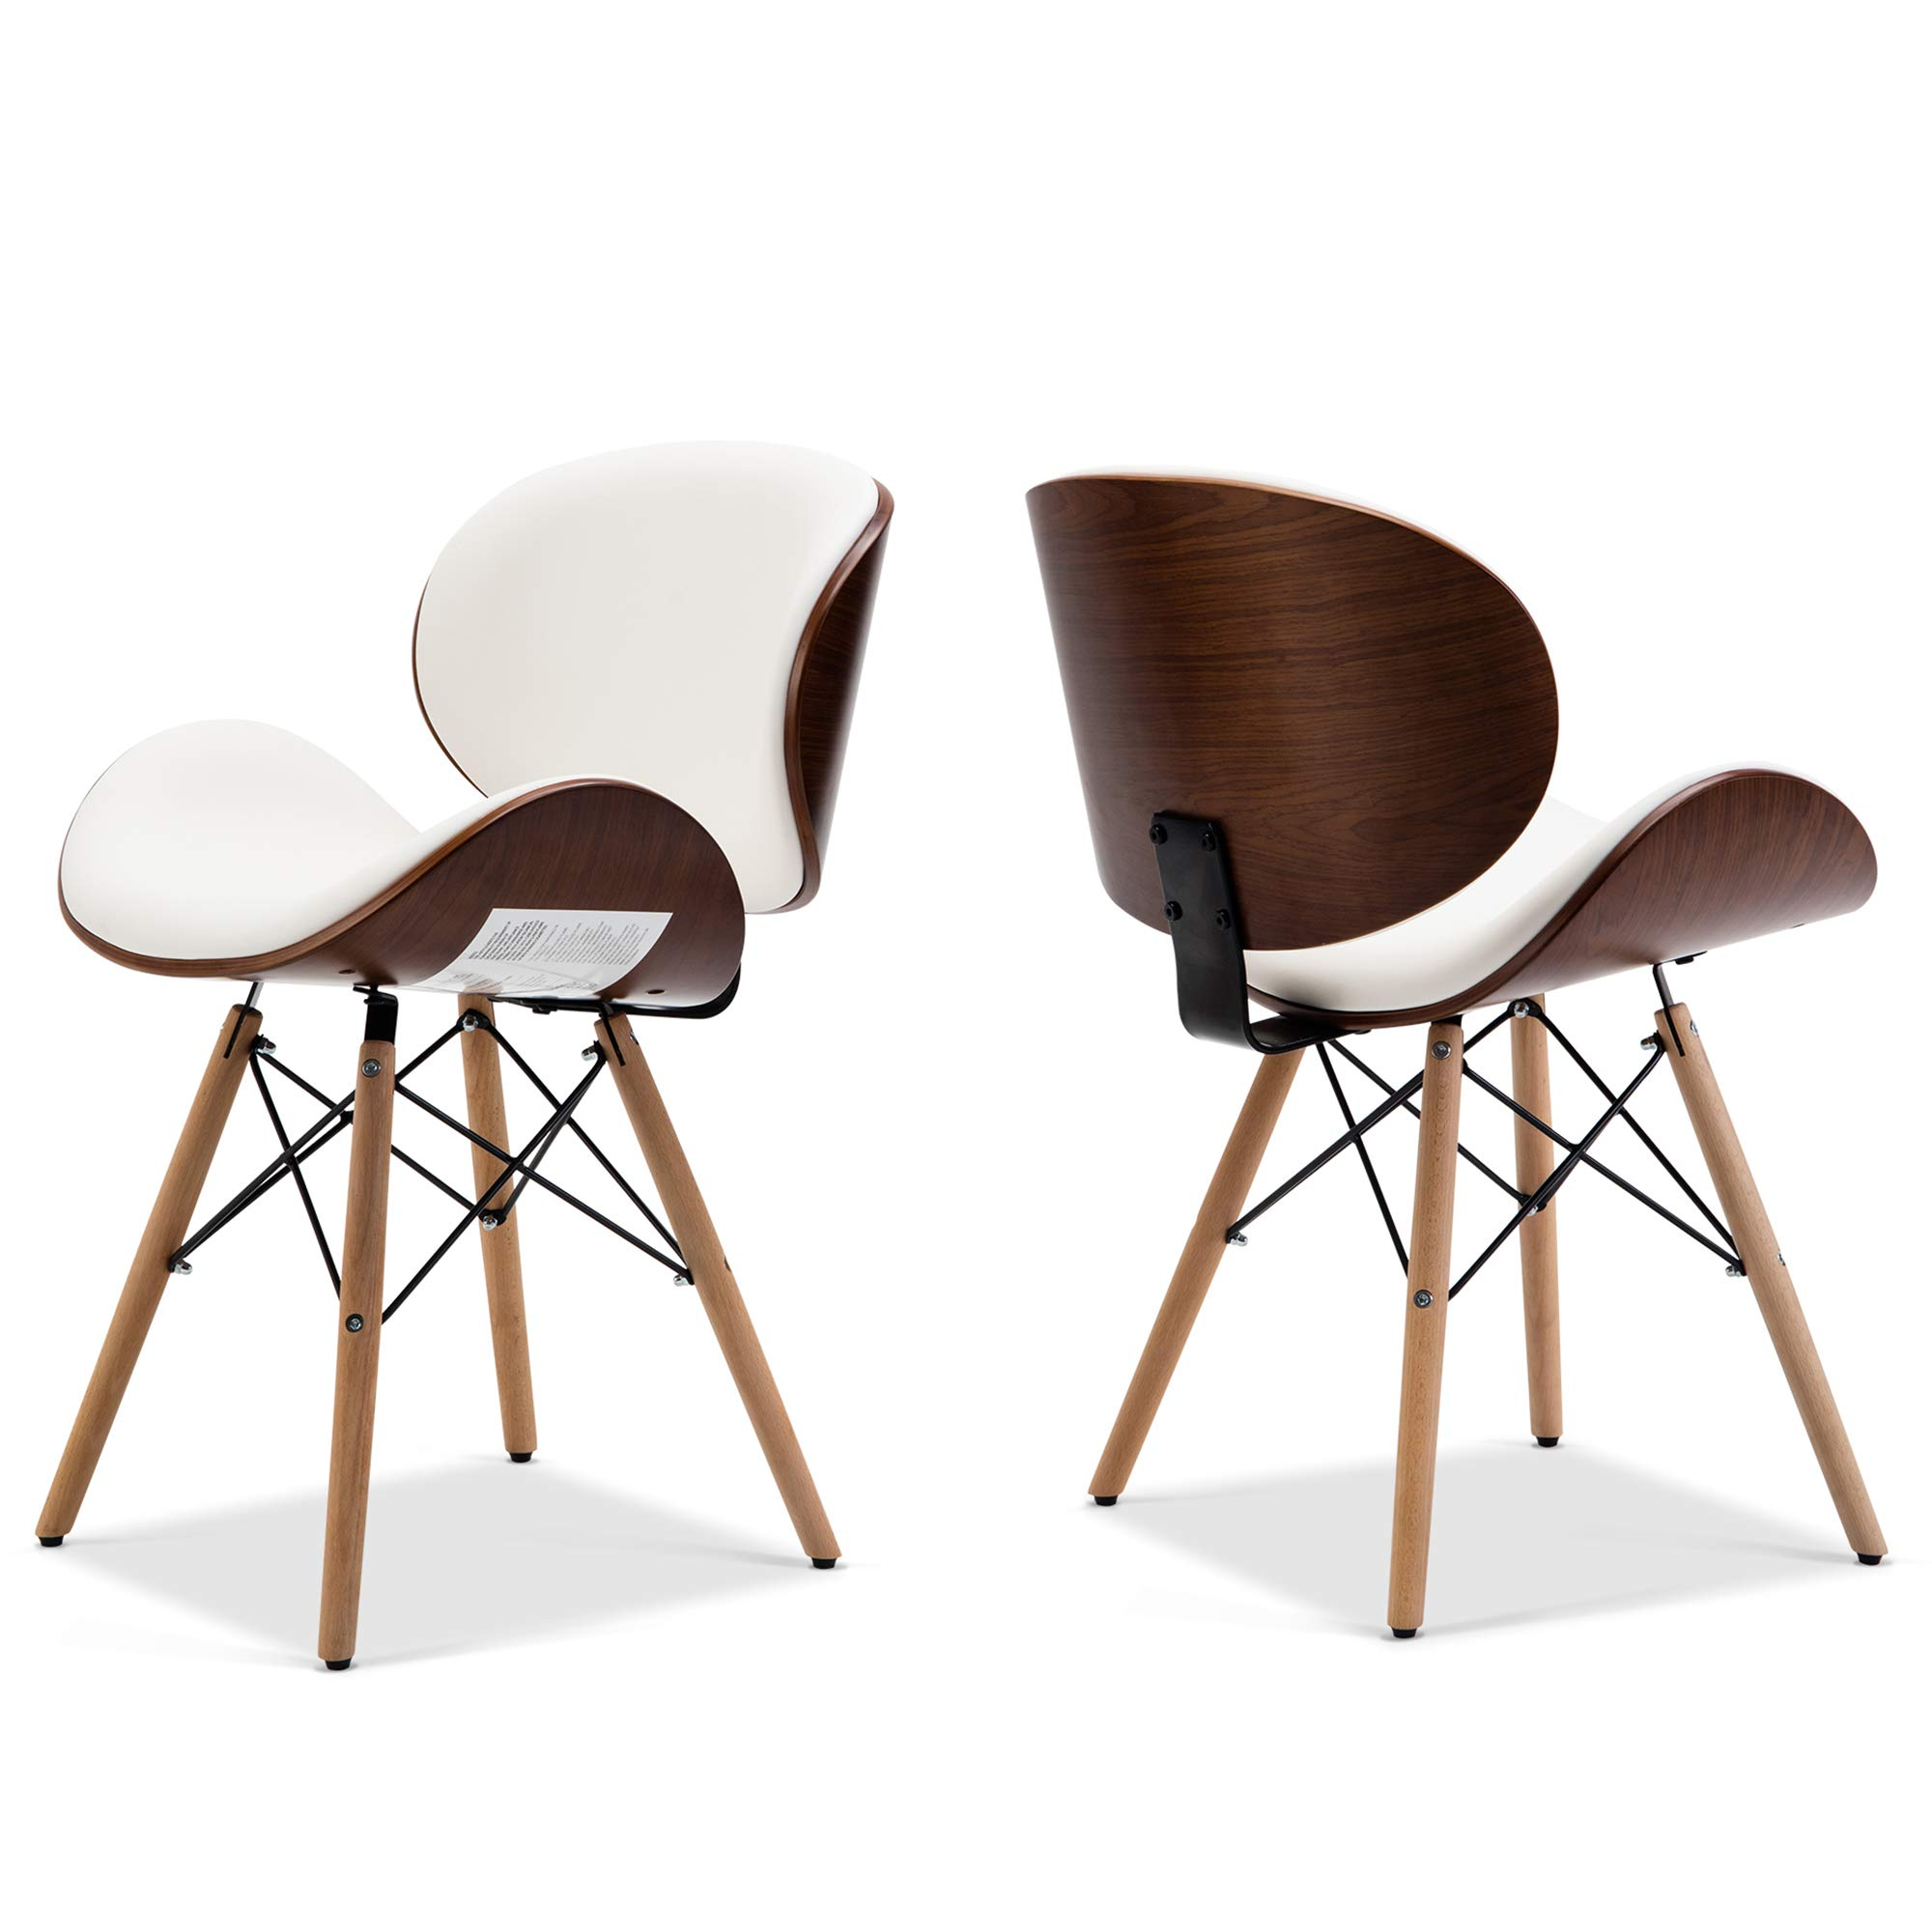 Belleze Set of 2 Mid-Century Living Room Kitchen Dining Room Curved Back Seat Walnut Accent Dining Chair, White by Belleze (Image #2)